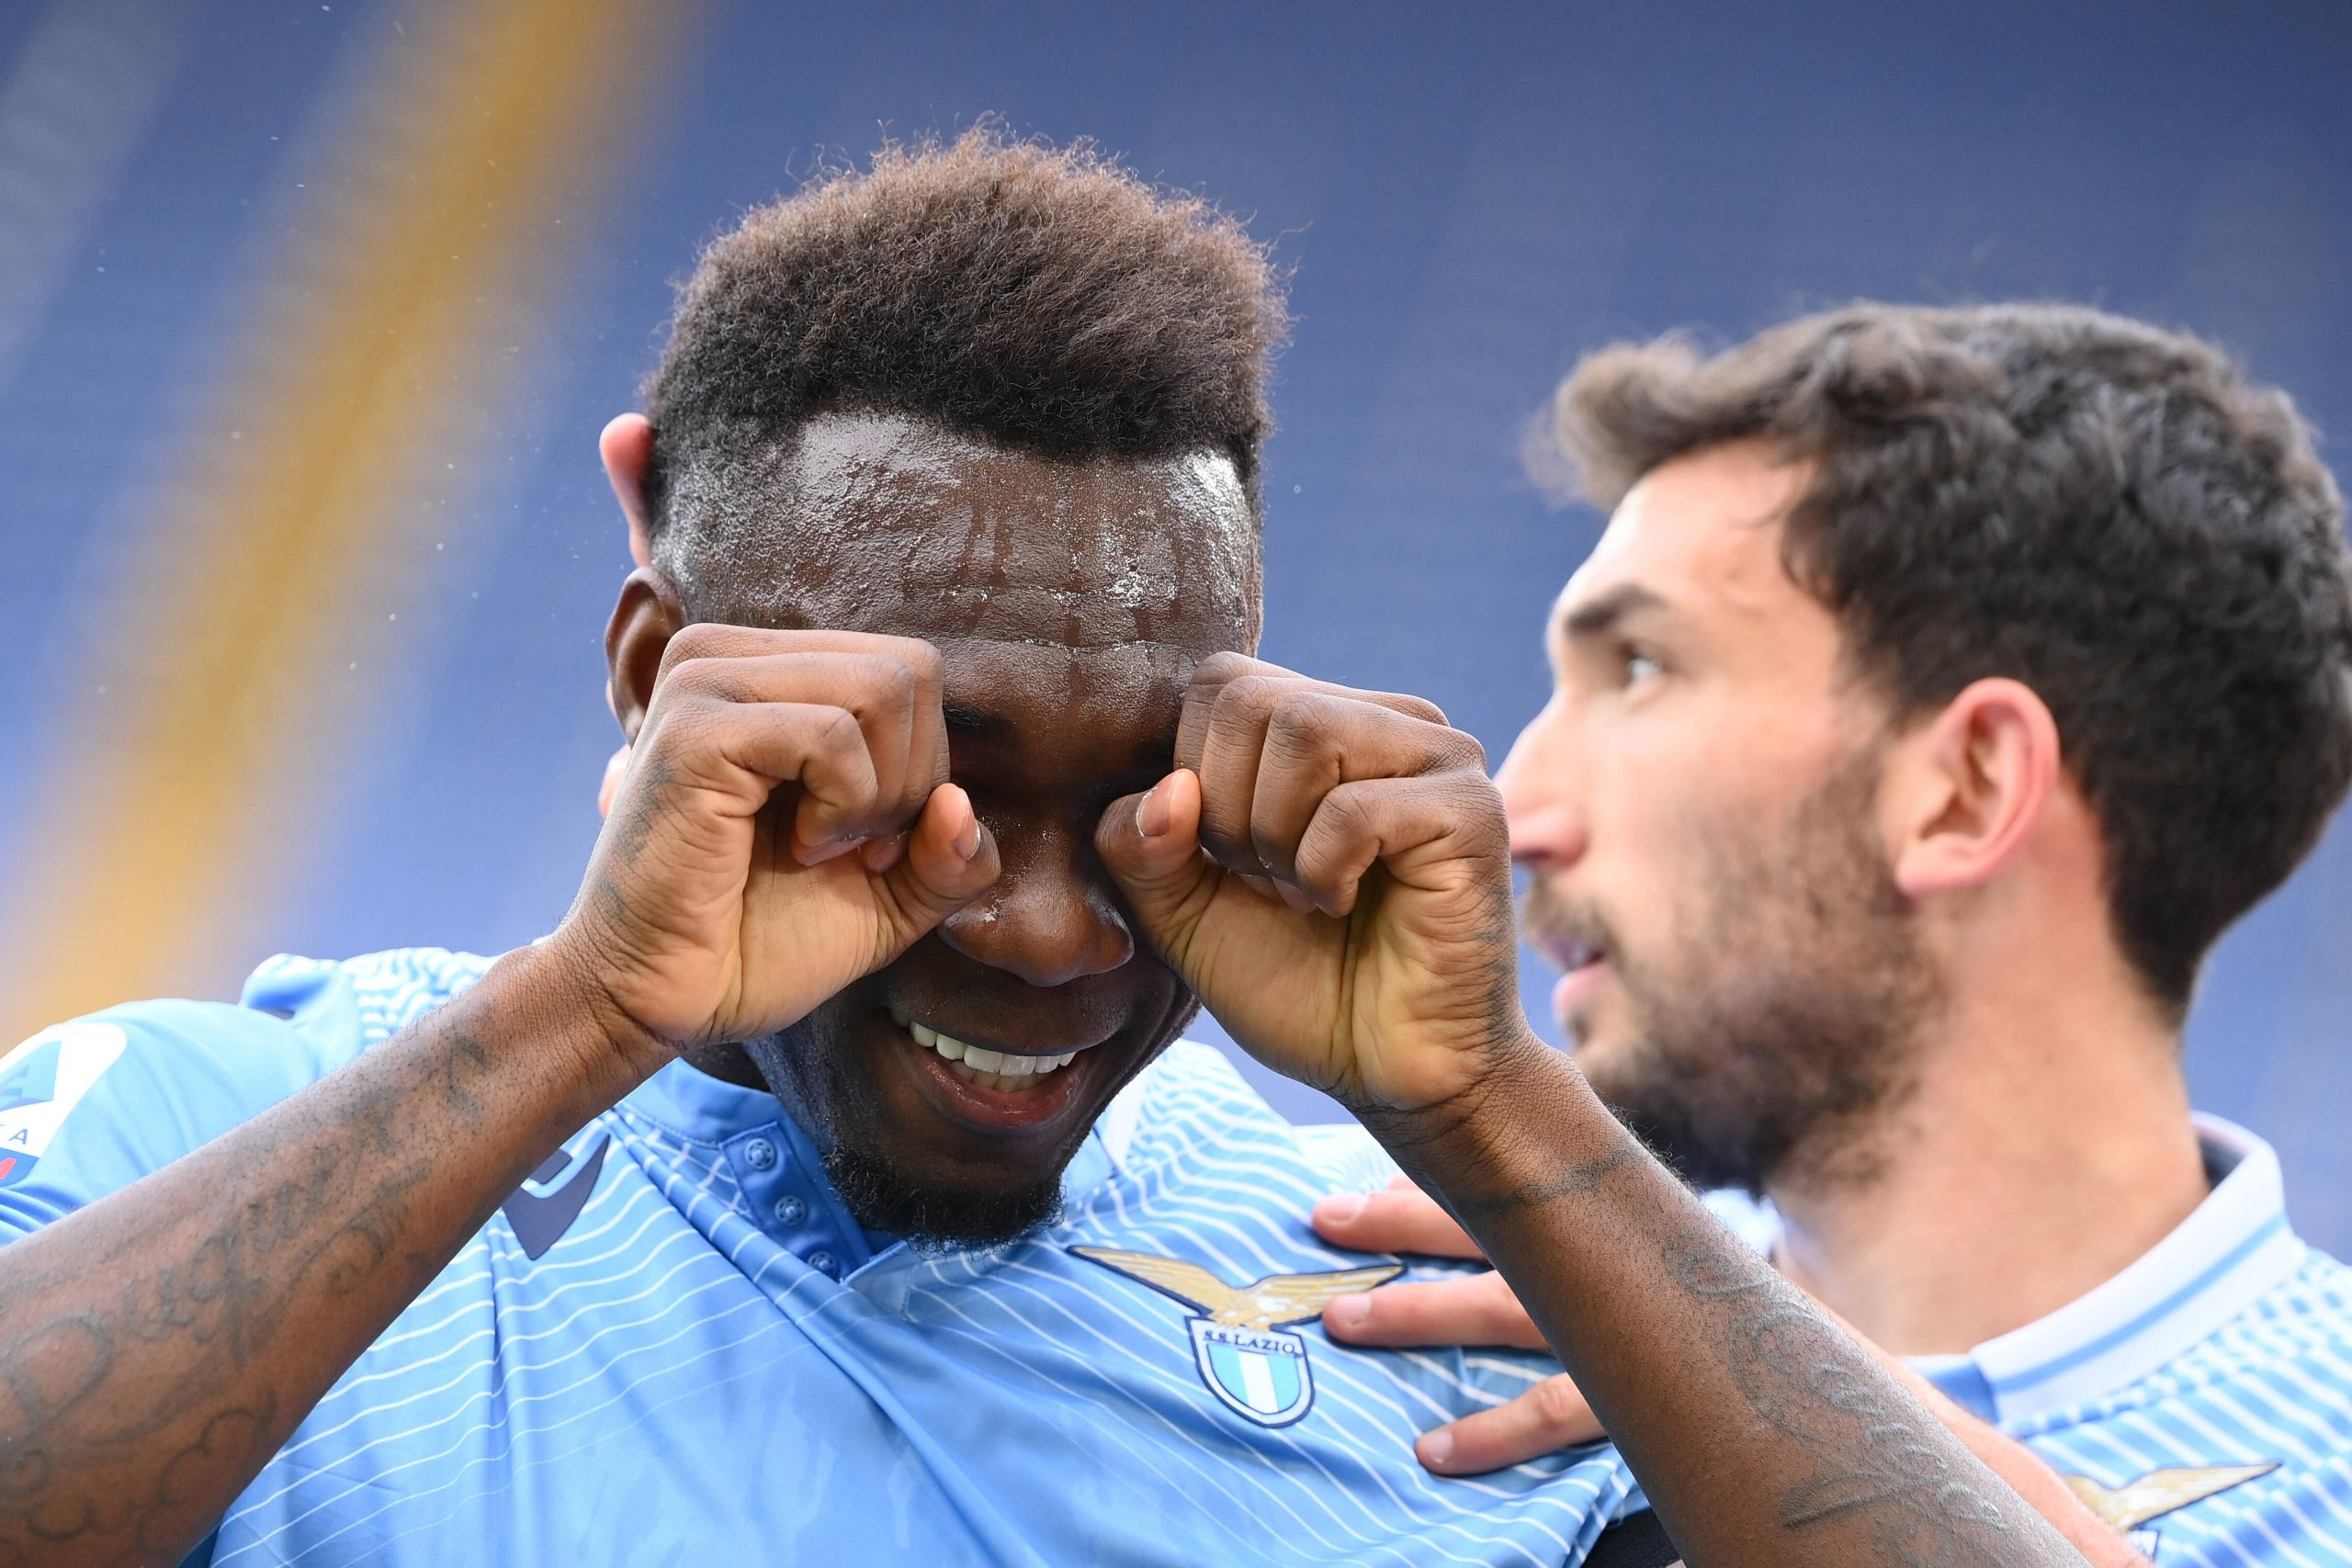 """Ex-Forward Cassano: """"AC Milan Could Have Used a Player Like Lazio's Caicedo"""" - The Laziali"""